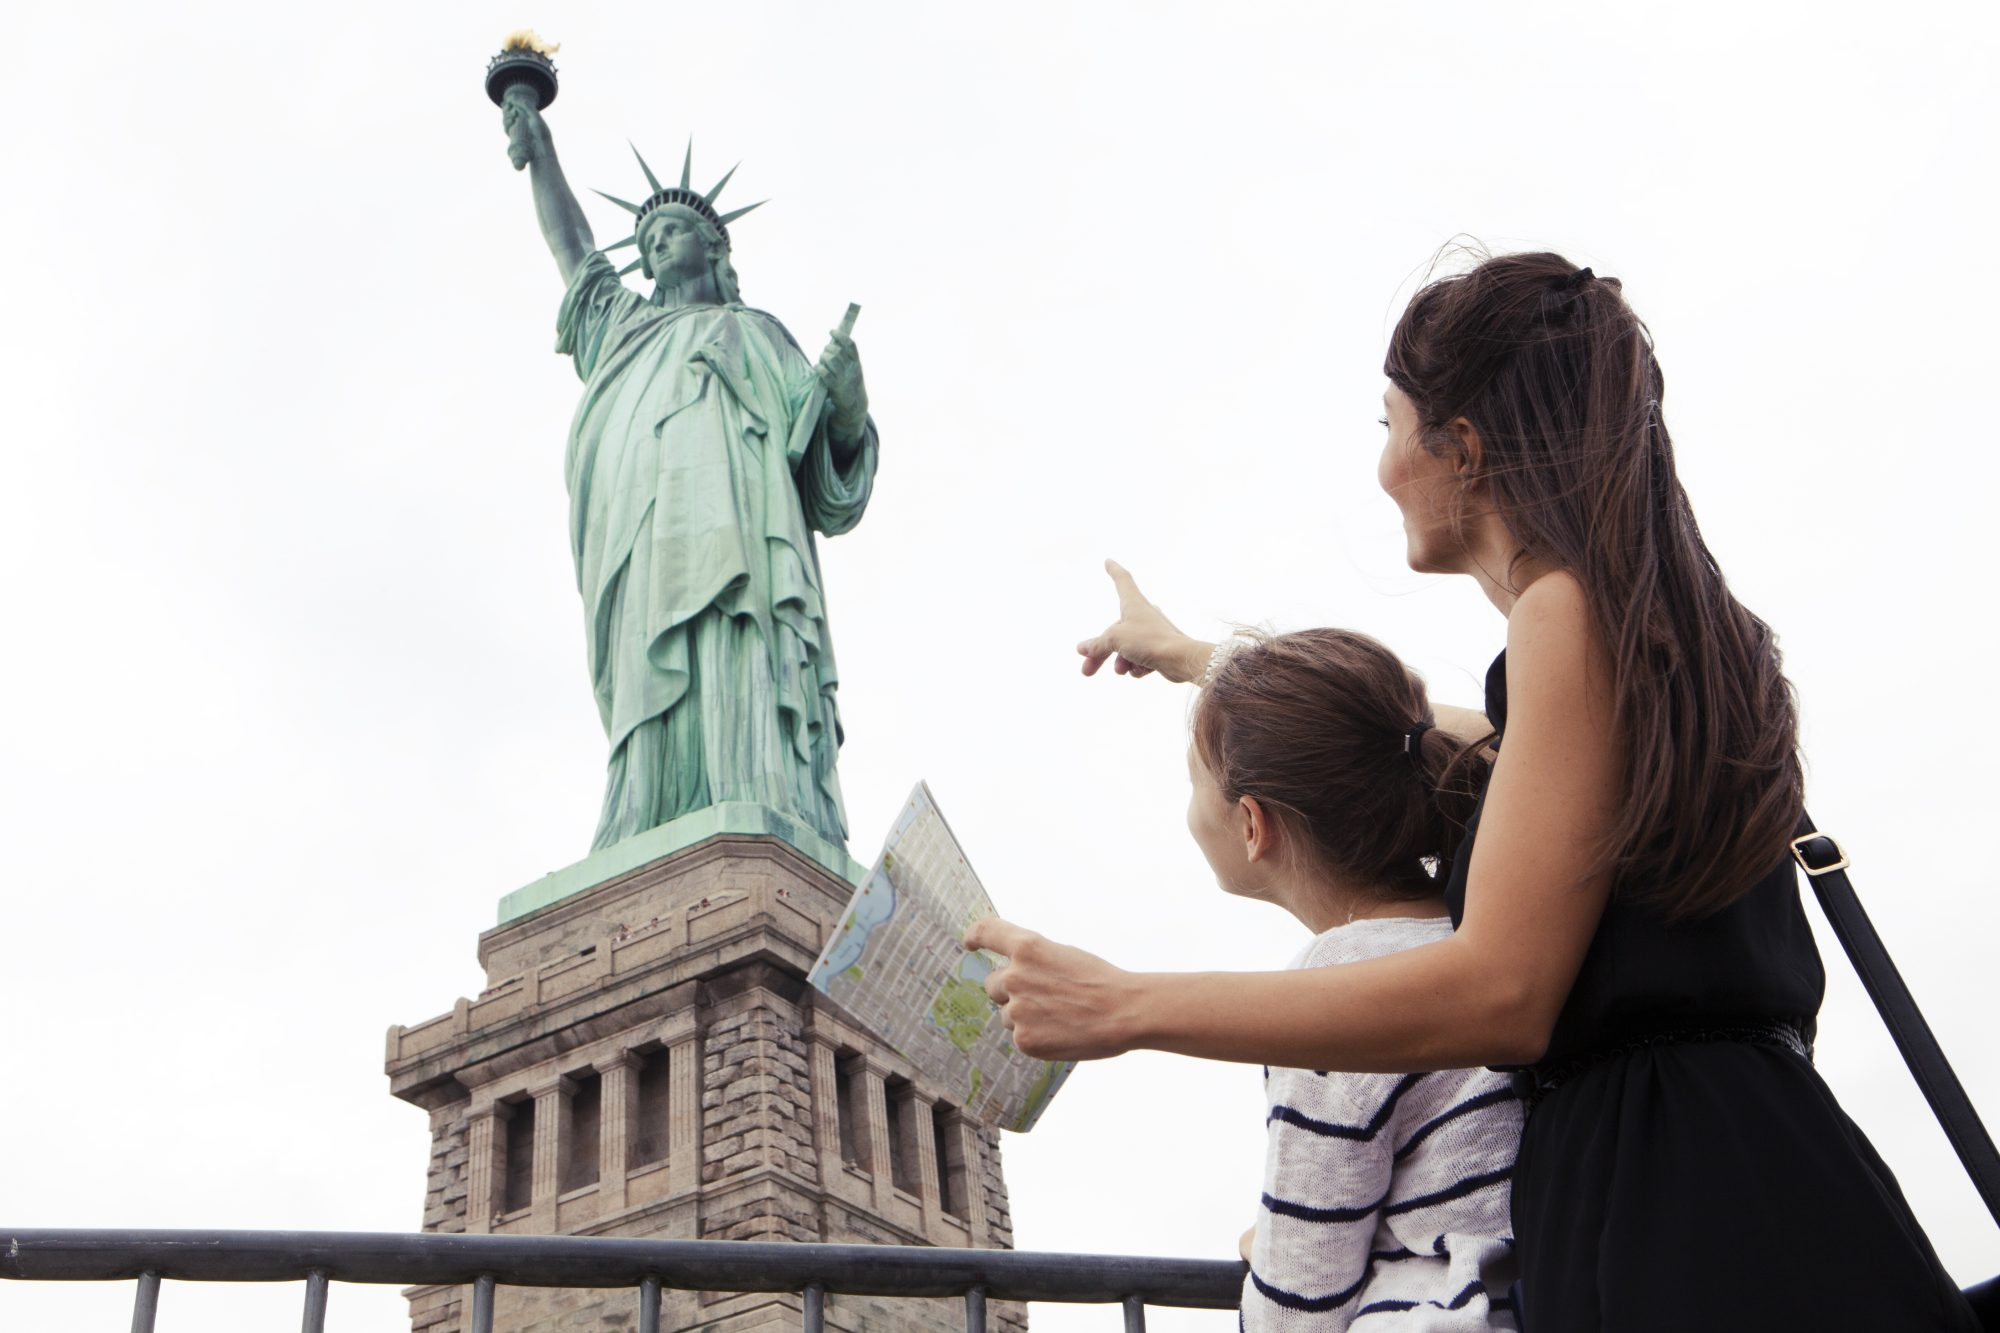 Mutter und Tochter in New York